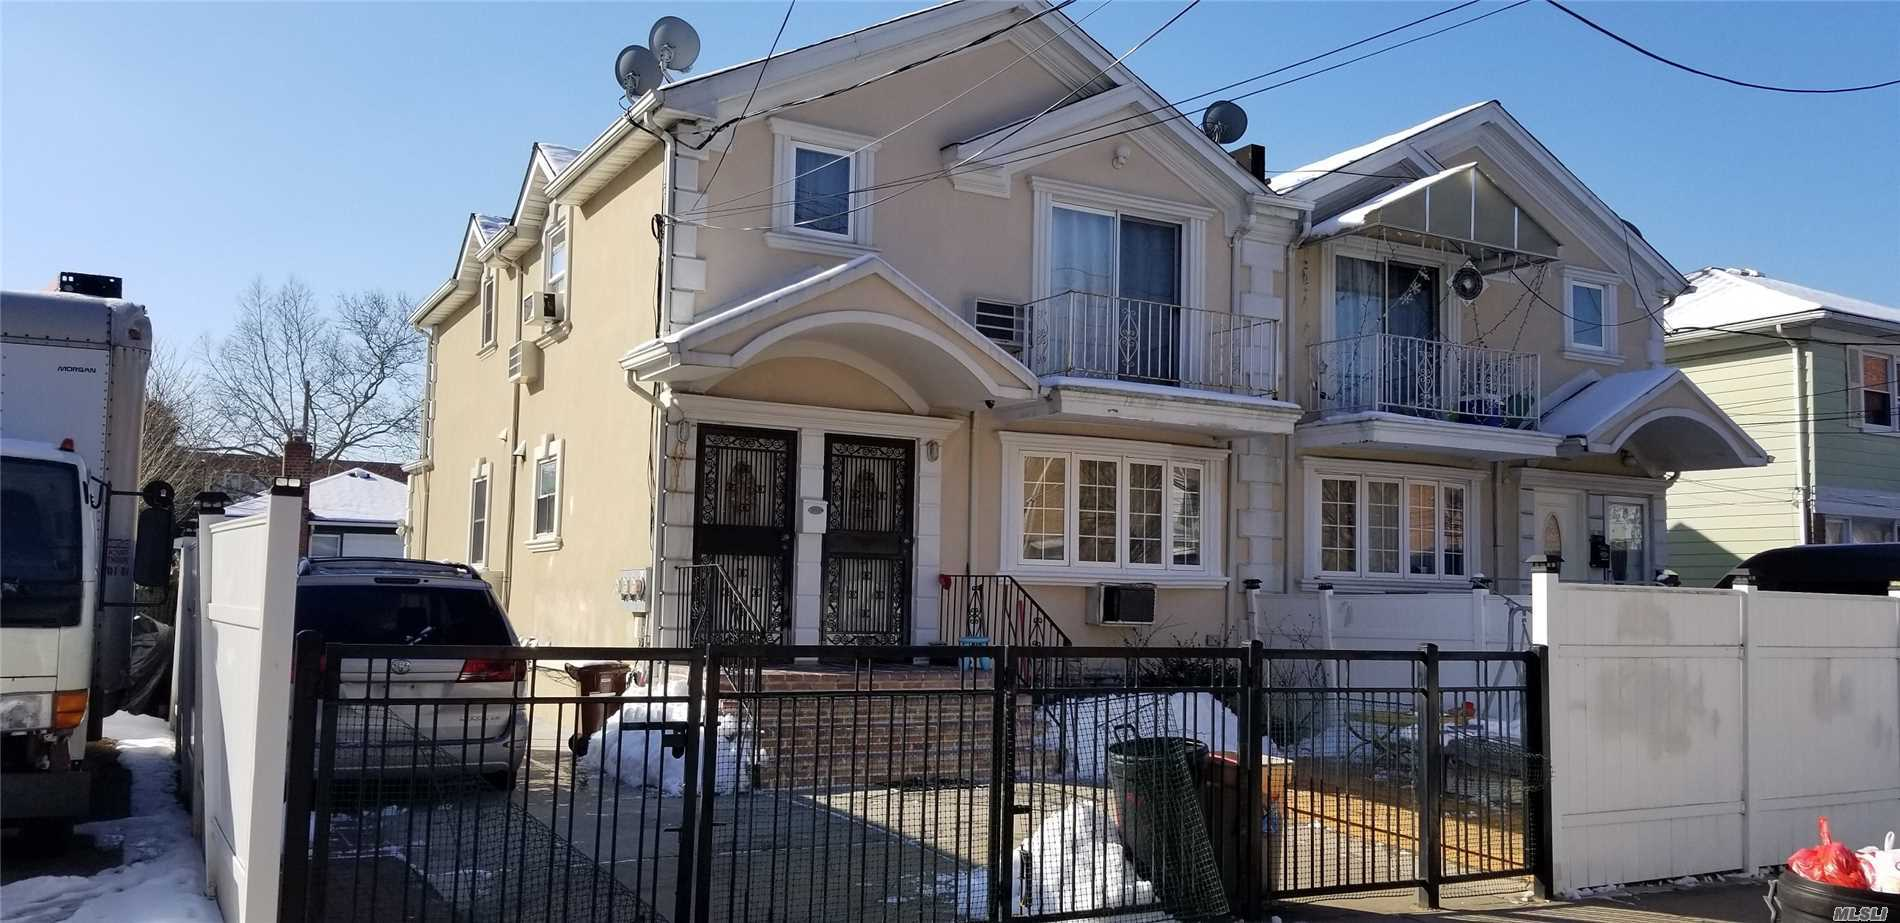 Build 2005, 14 years young & Beautiful Contemporary 2 Family Sd House In Fresh Meadows,  3Br/2bath over 3Br/2Bath with Front & Rear Terrace, Excellent Condition